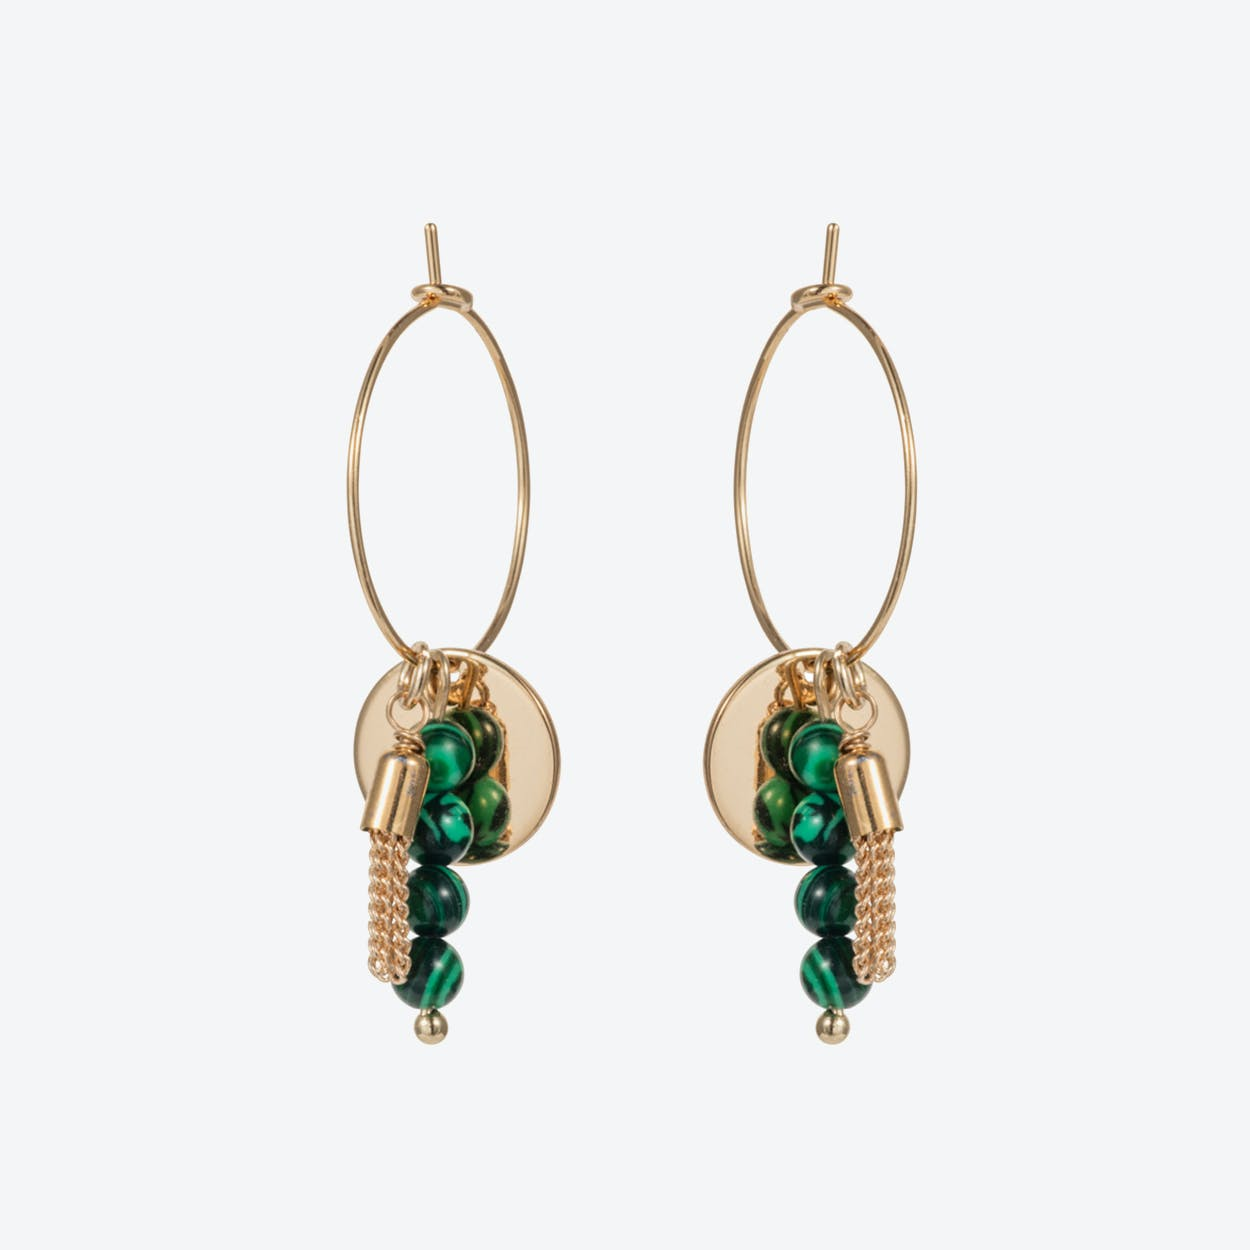 Hoop Semi-Precious Cluster Earrings – Gold with Malachite